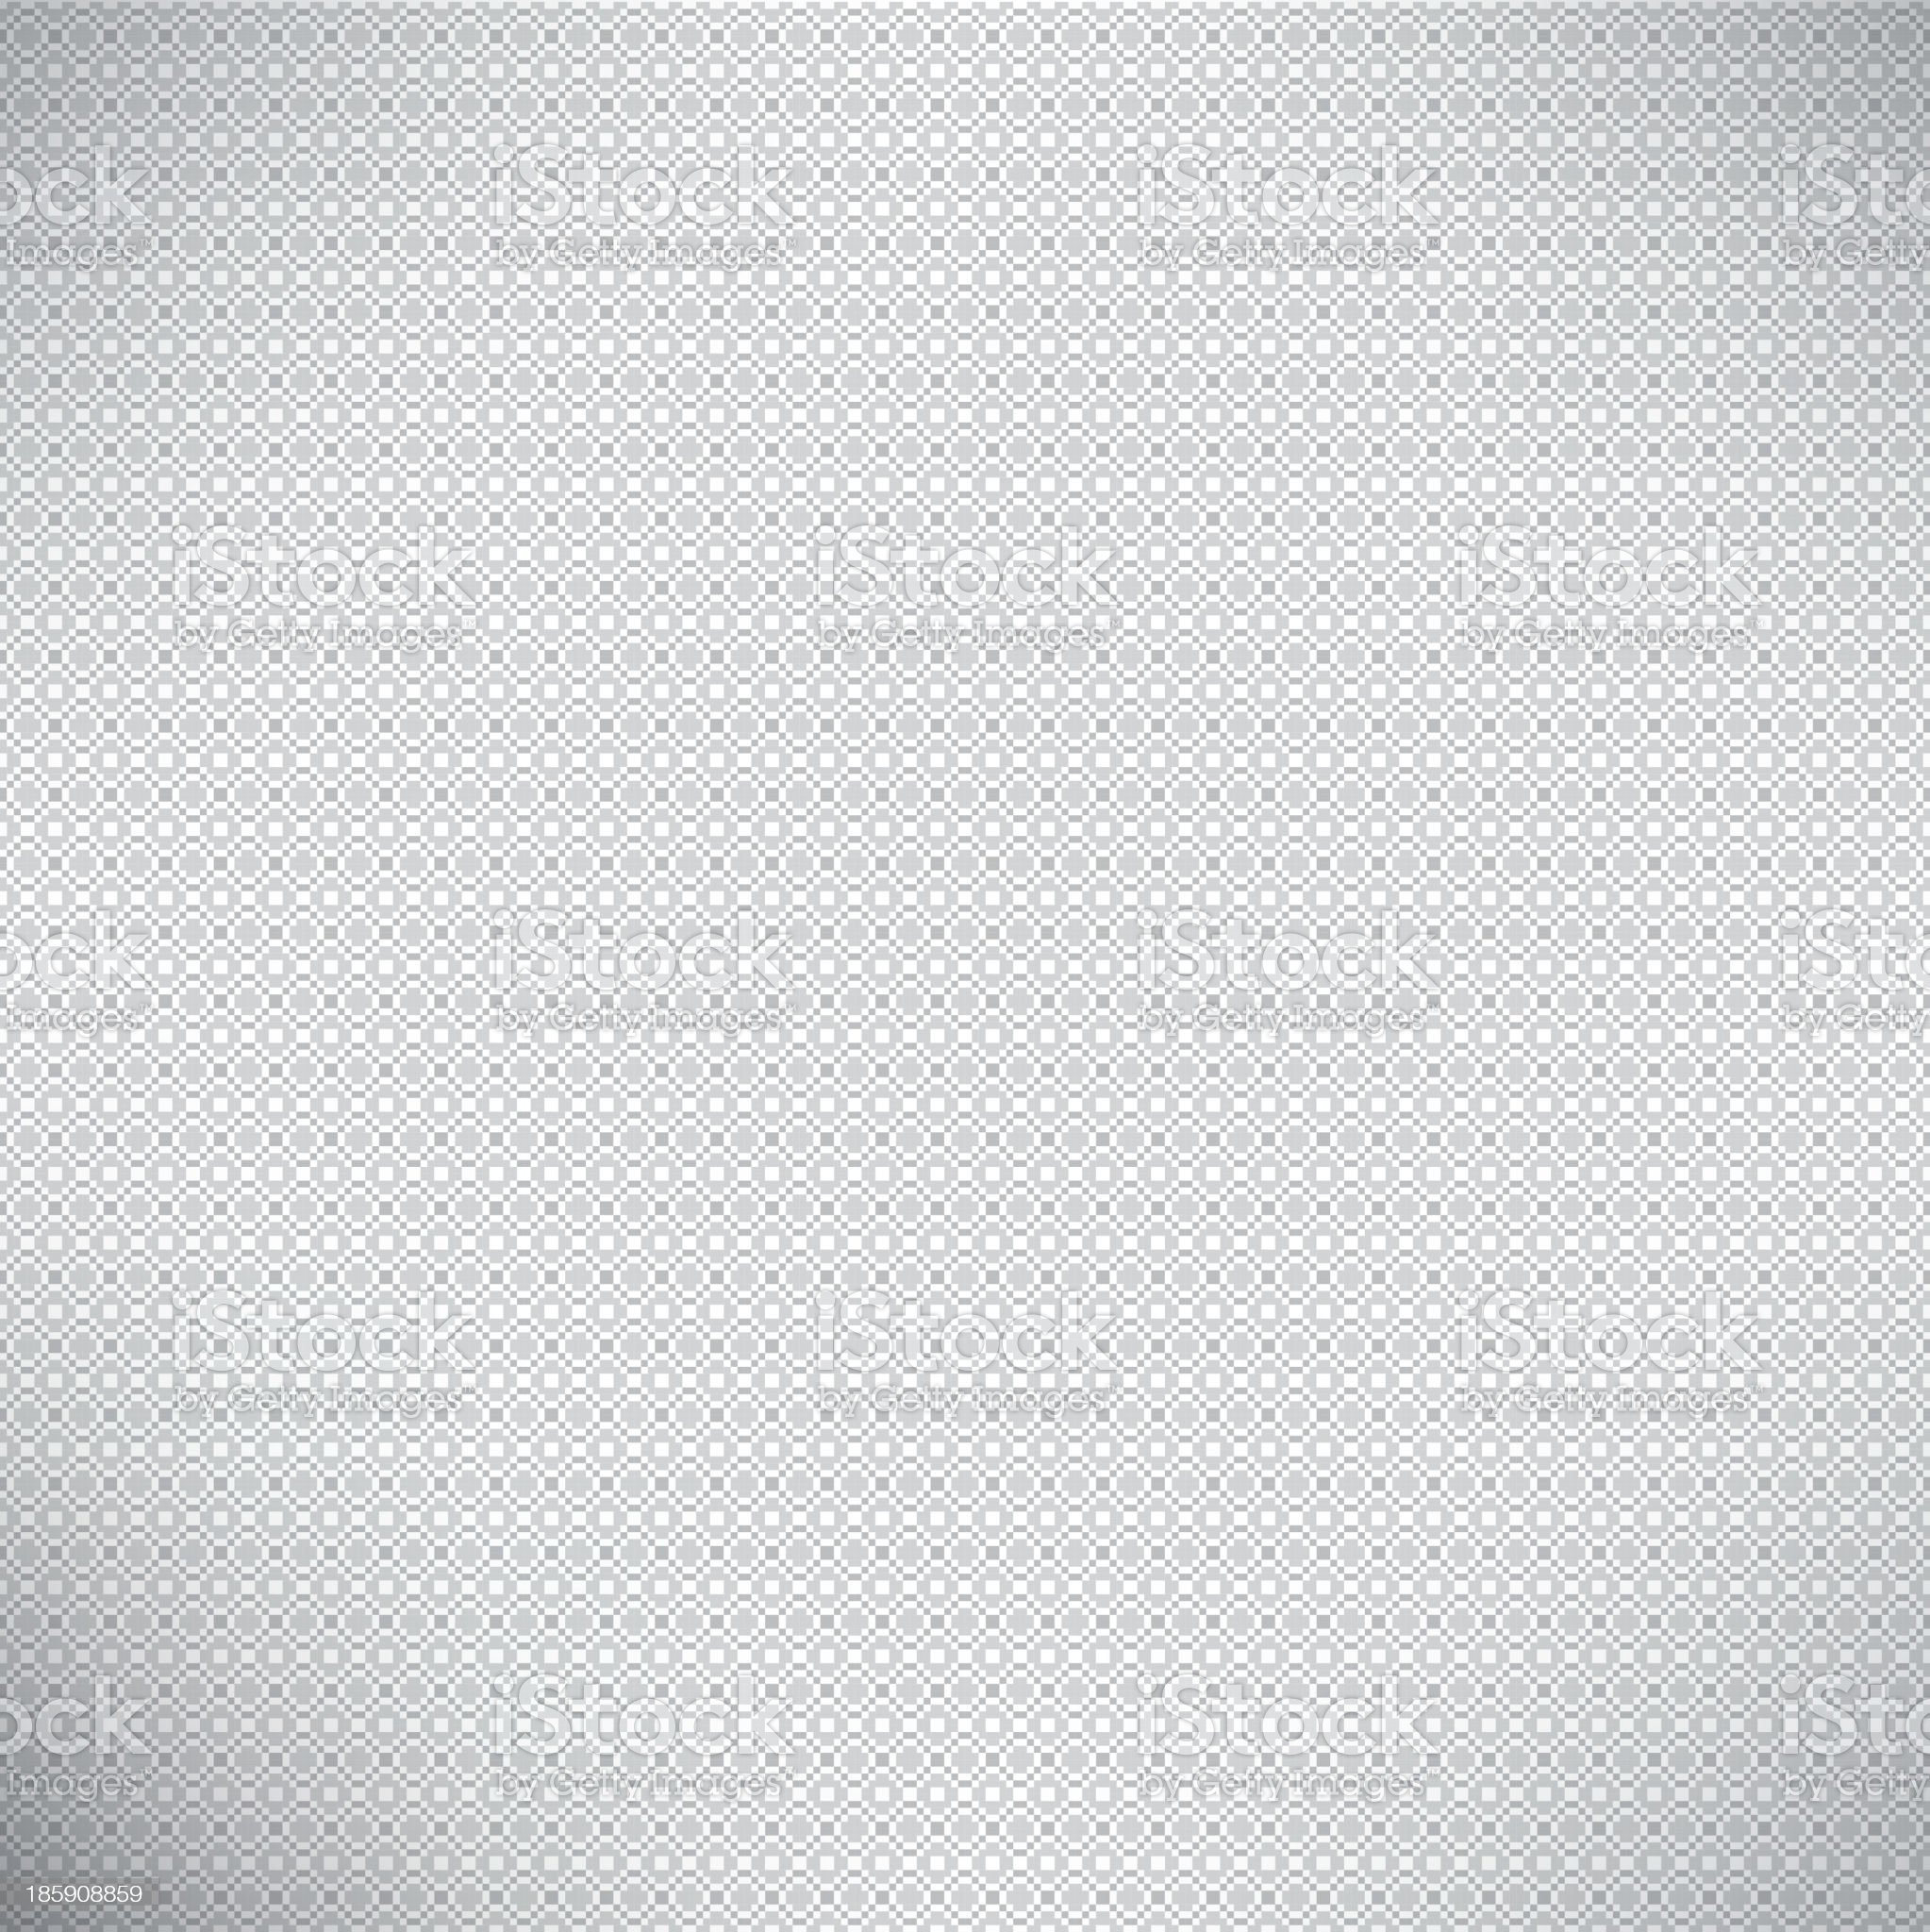 Abstract white regular background royalty-free stock vector art